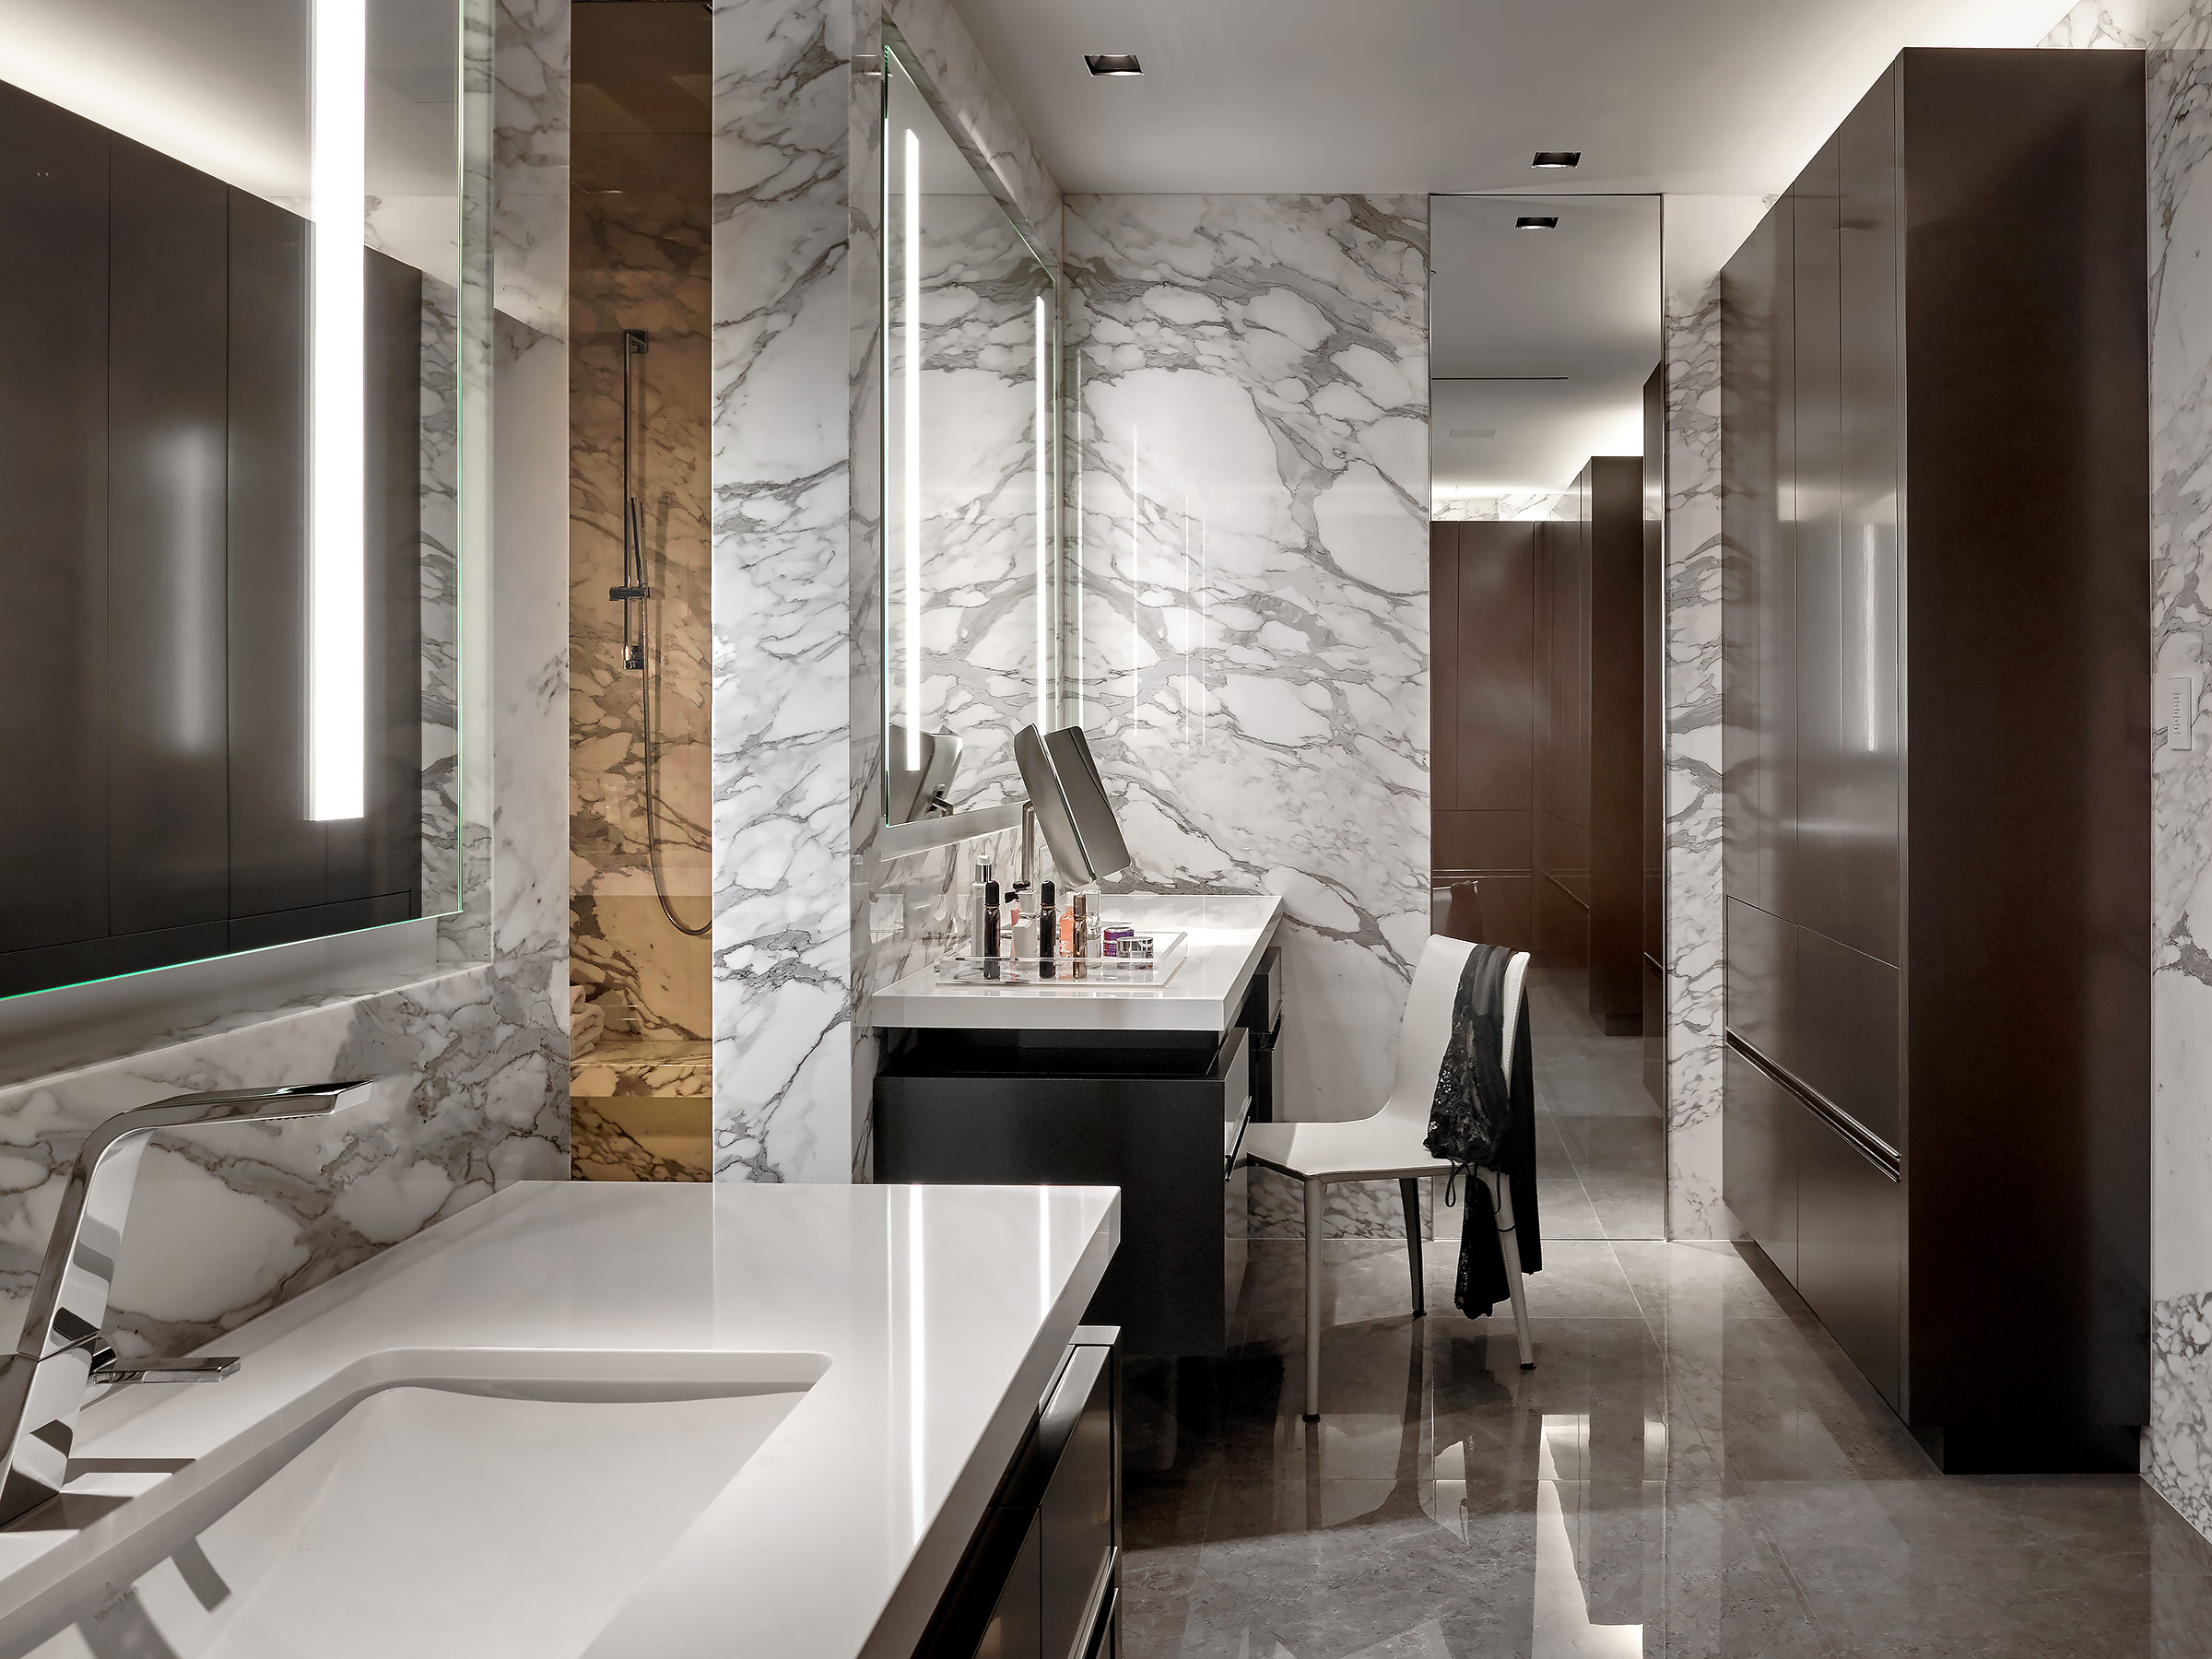 Fort-Lauderdale-Bathroom-Design-B-and-G-Design